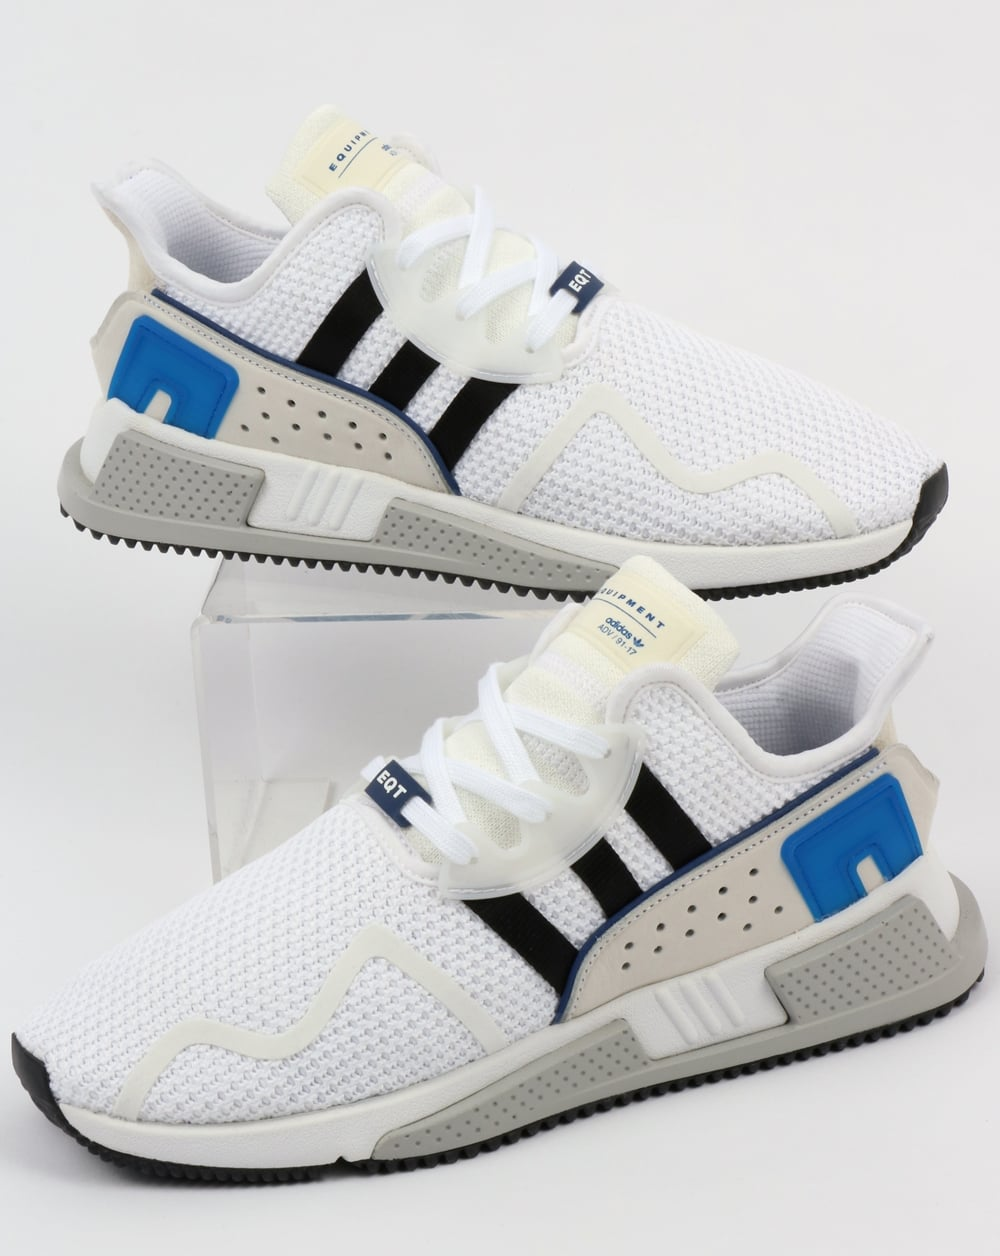 best cheap 4bcf0 b0f20 adidas Trainers Adidas EQT Cushion ADV Trainers WhiteBlackRoyal